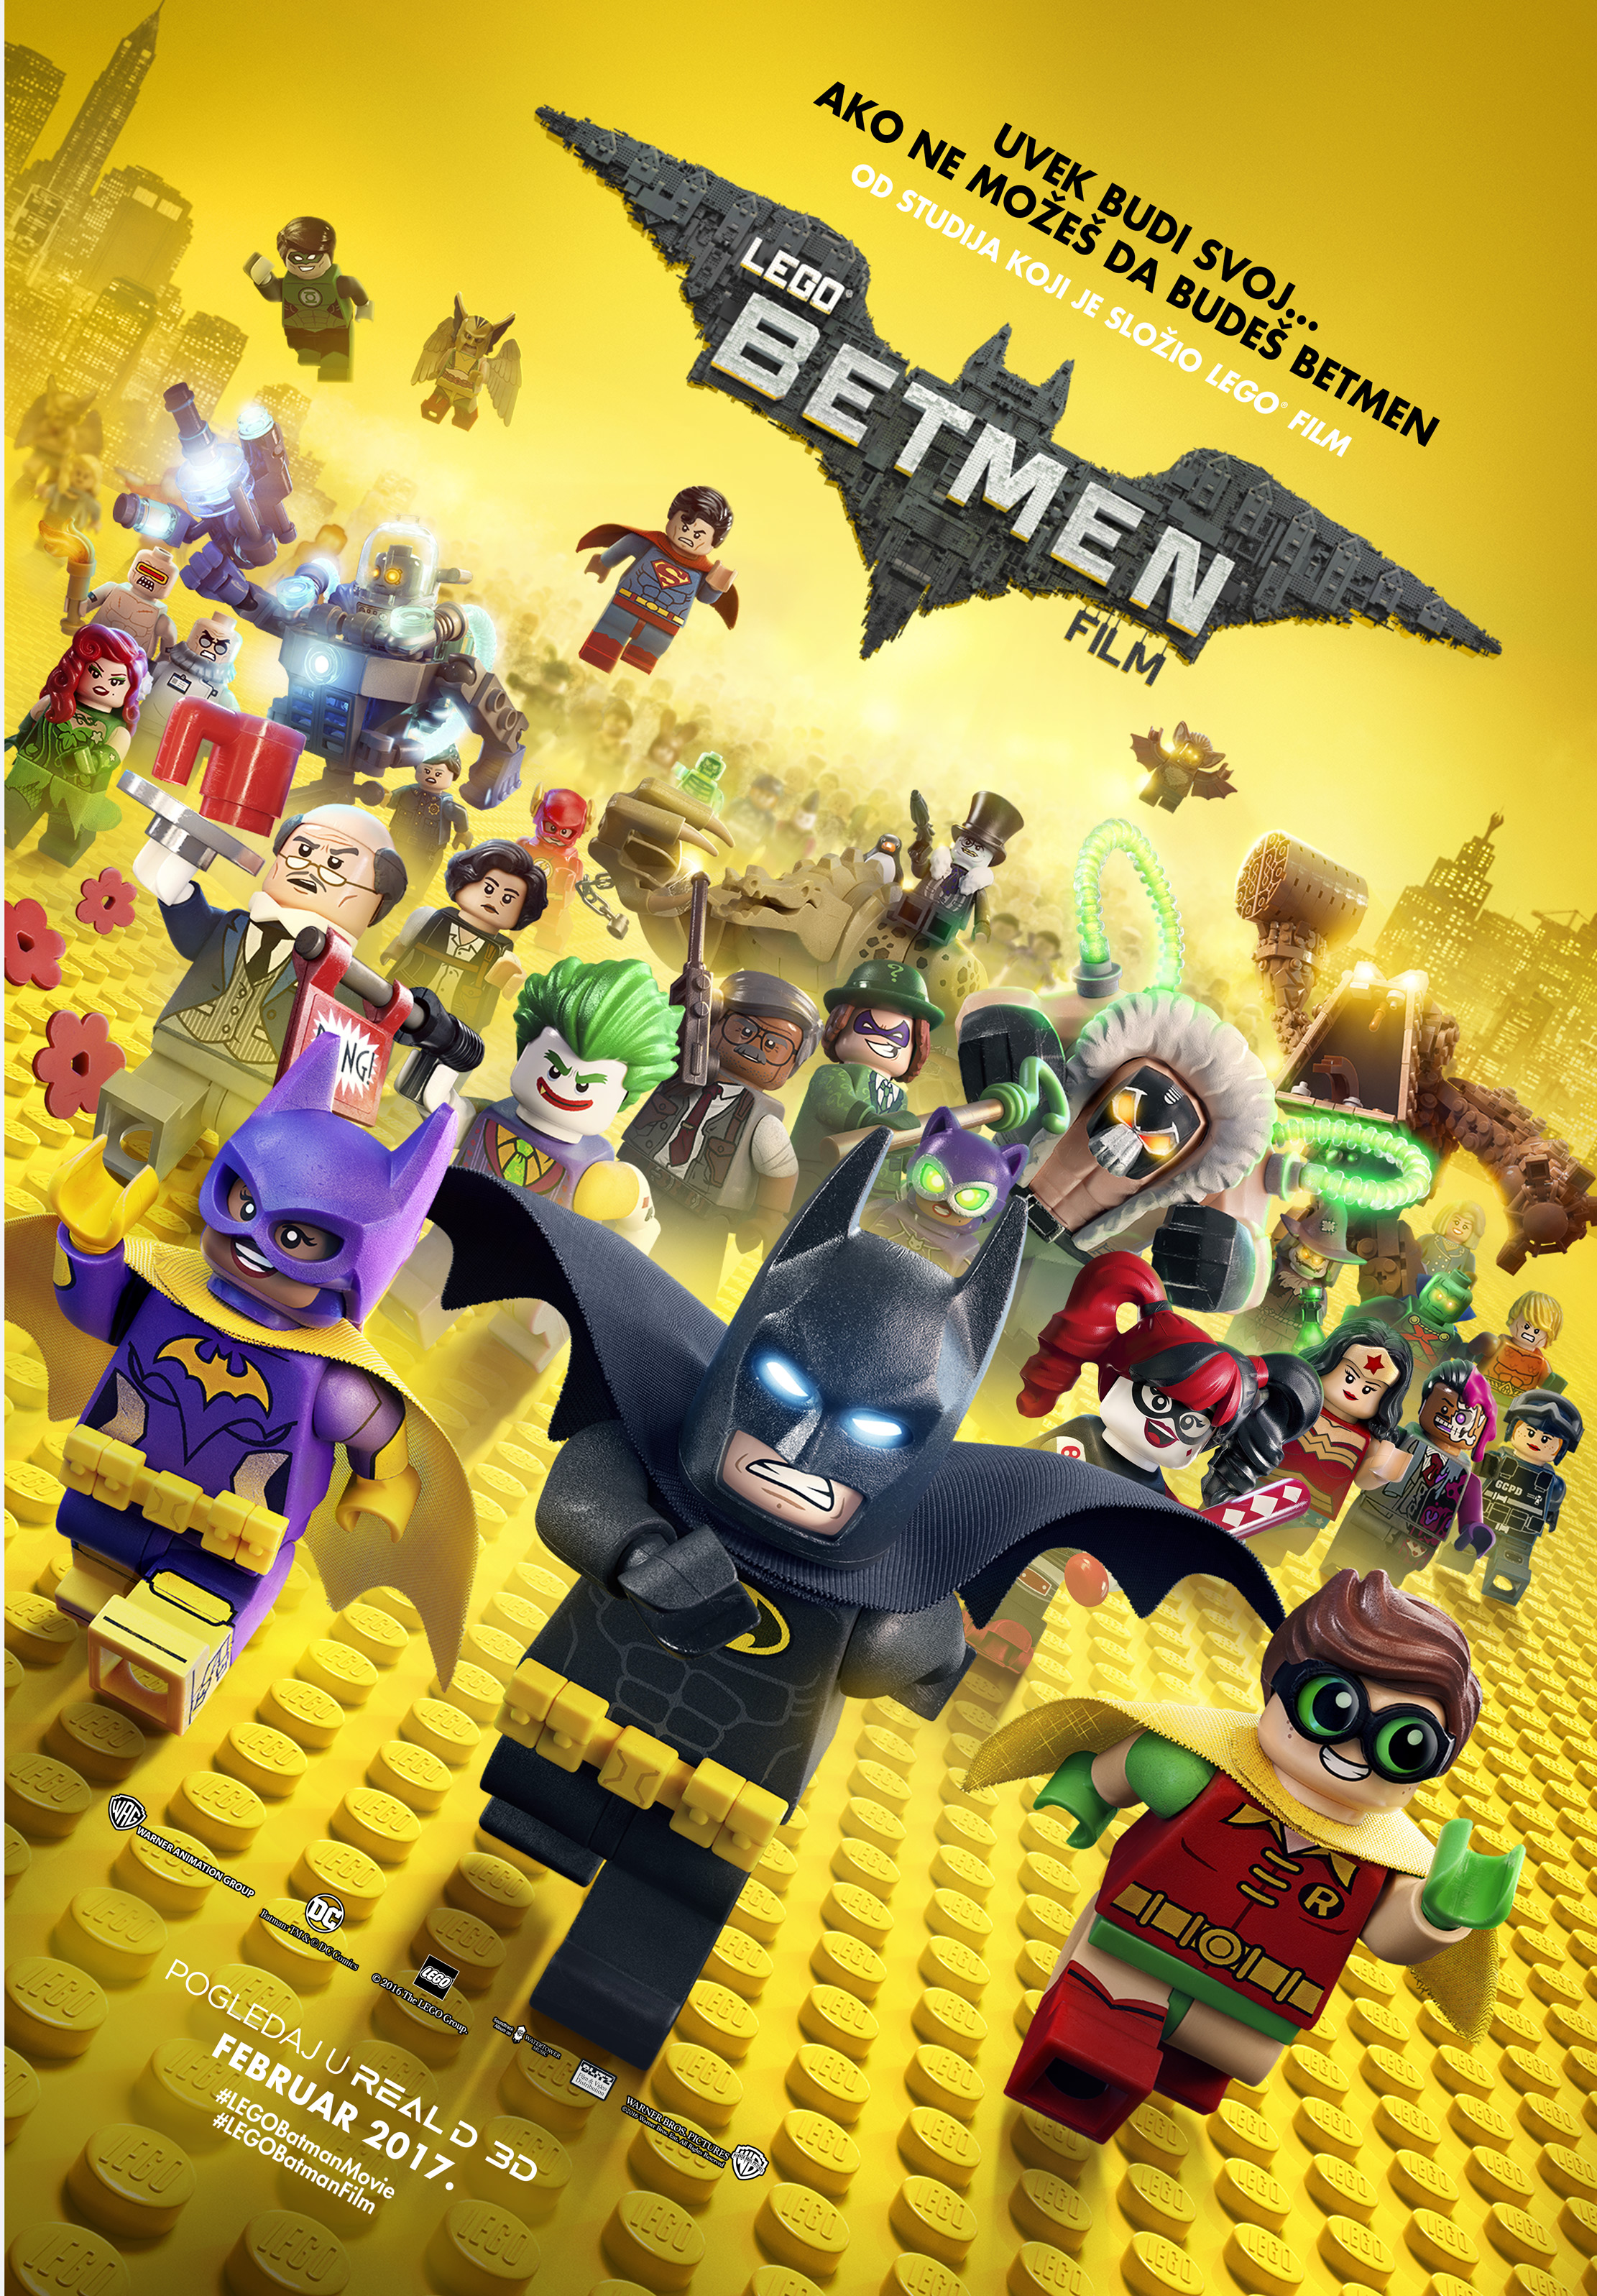 Lego Betmen film 3D (video)